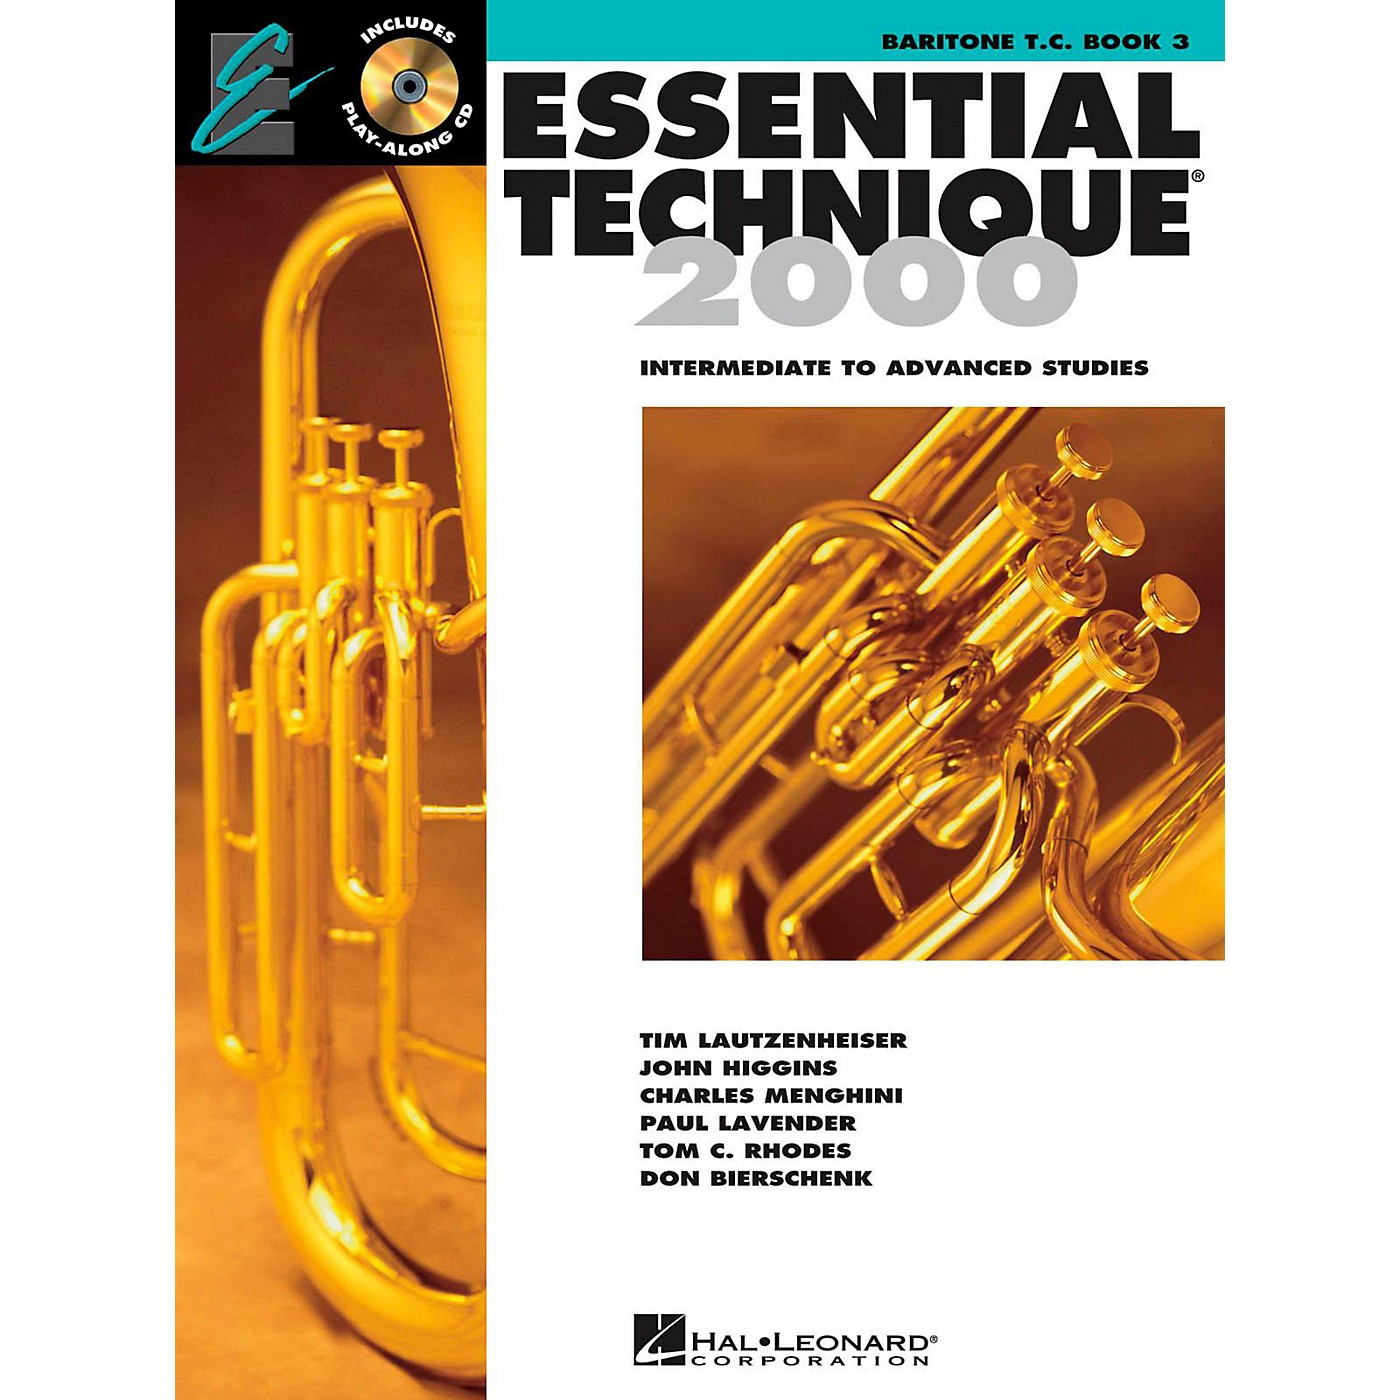 Hal Leonard Essential Technique for Band - Baritone T.C. (Book 3 with EEi) thumbnail